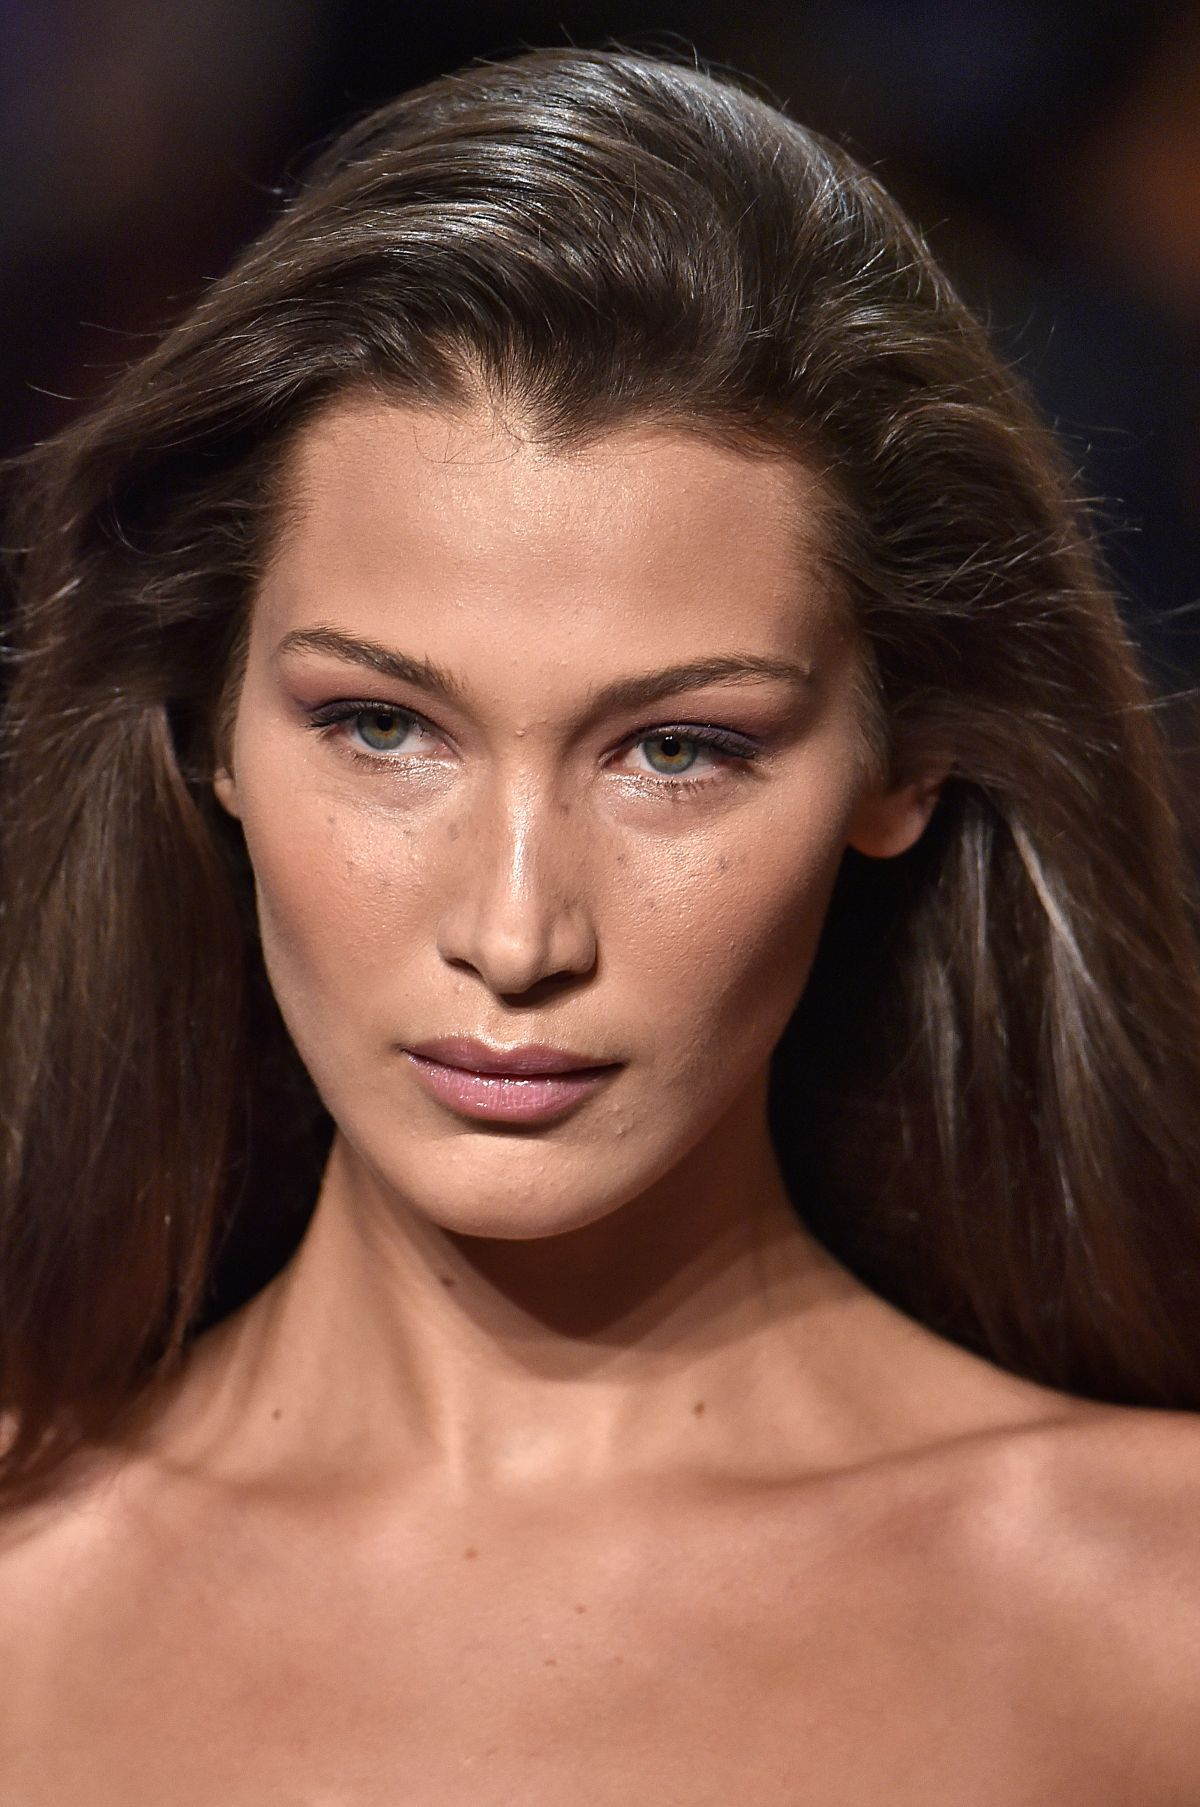 Forum on this topic: Haley nicole permenter naked, bella-hadid-close-up-6/